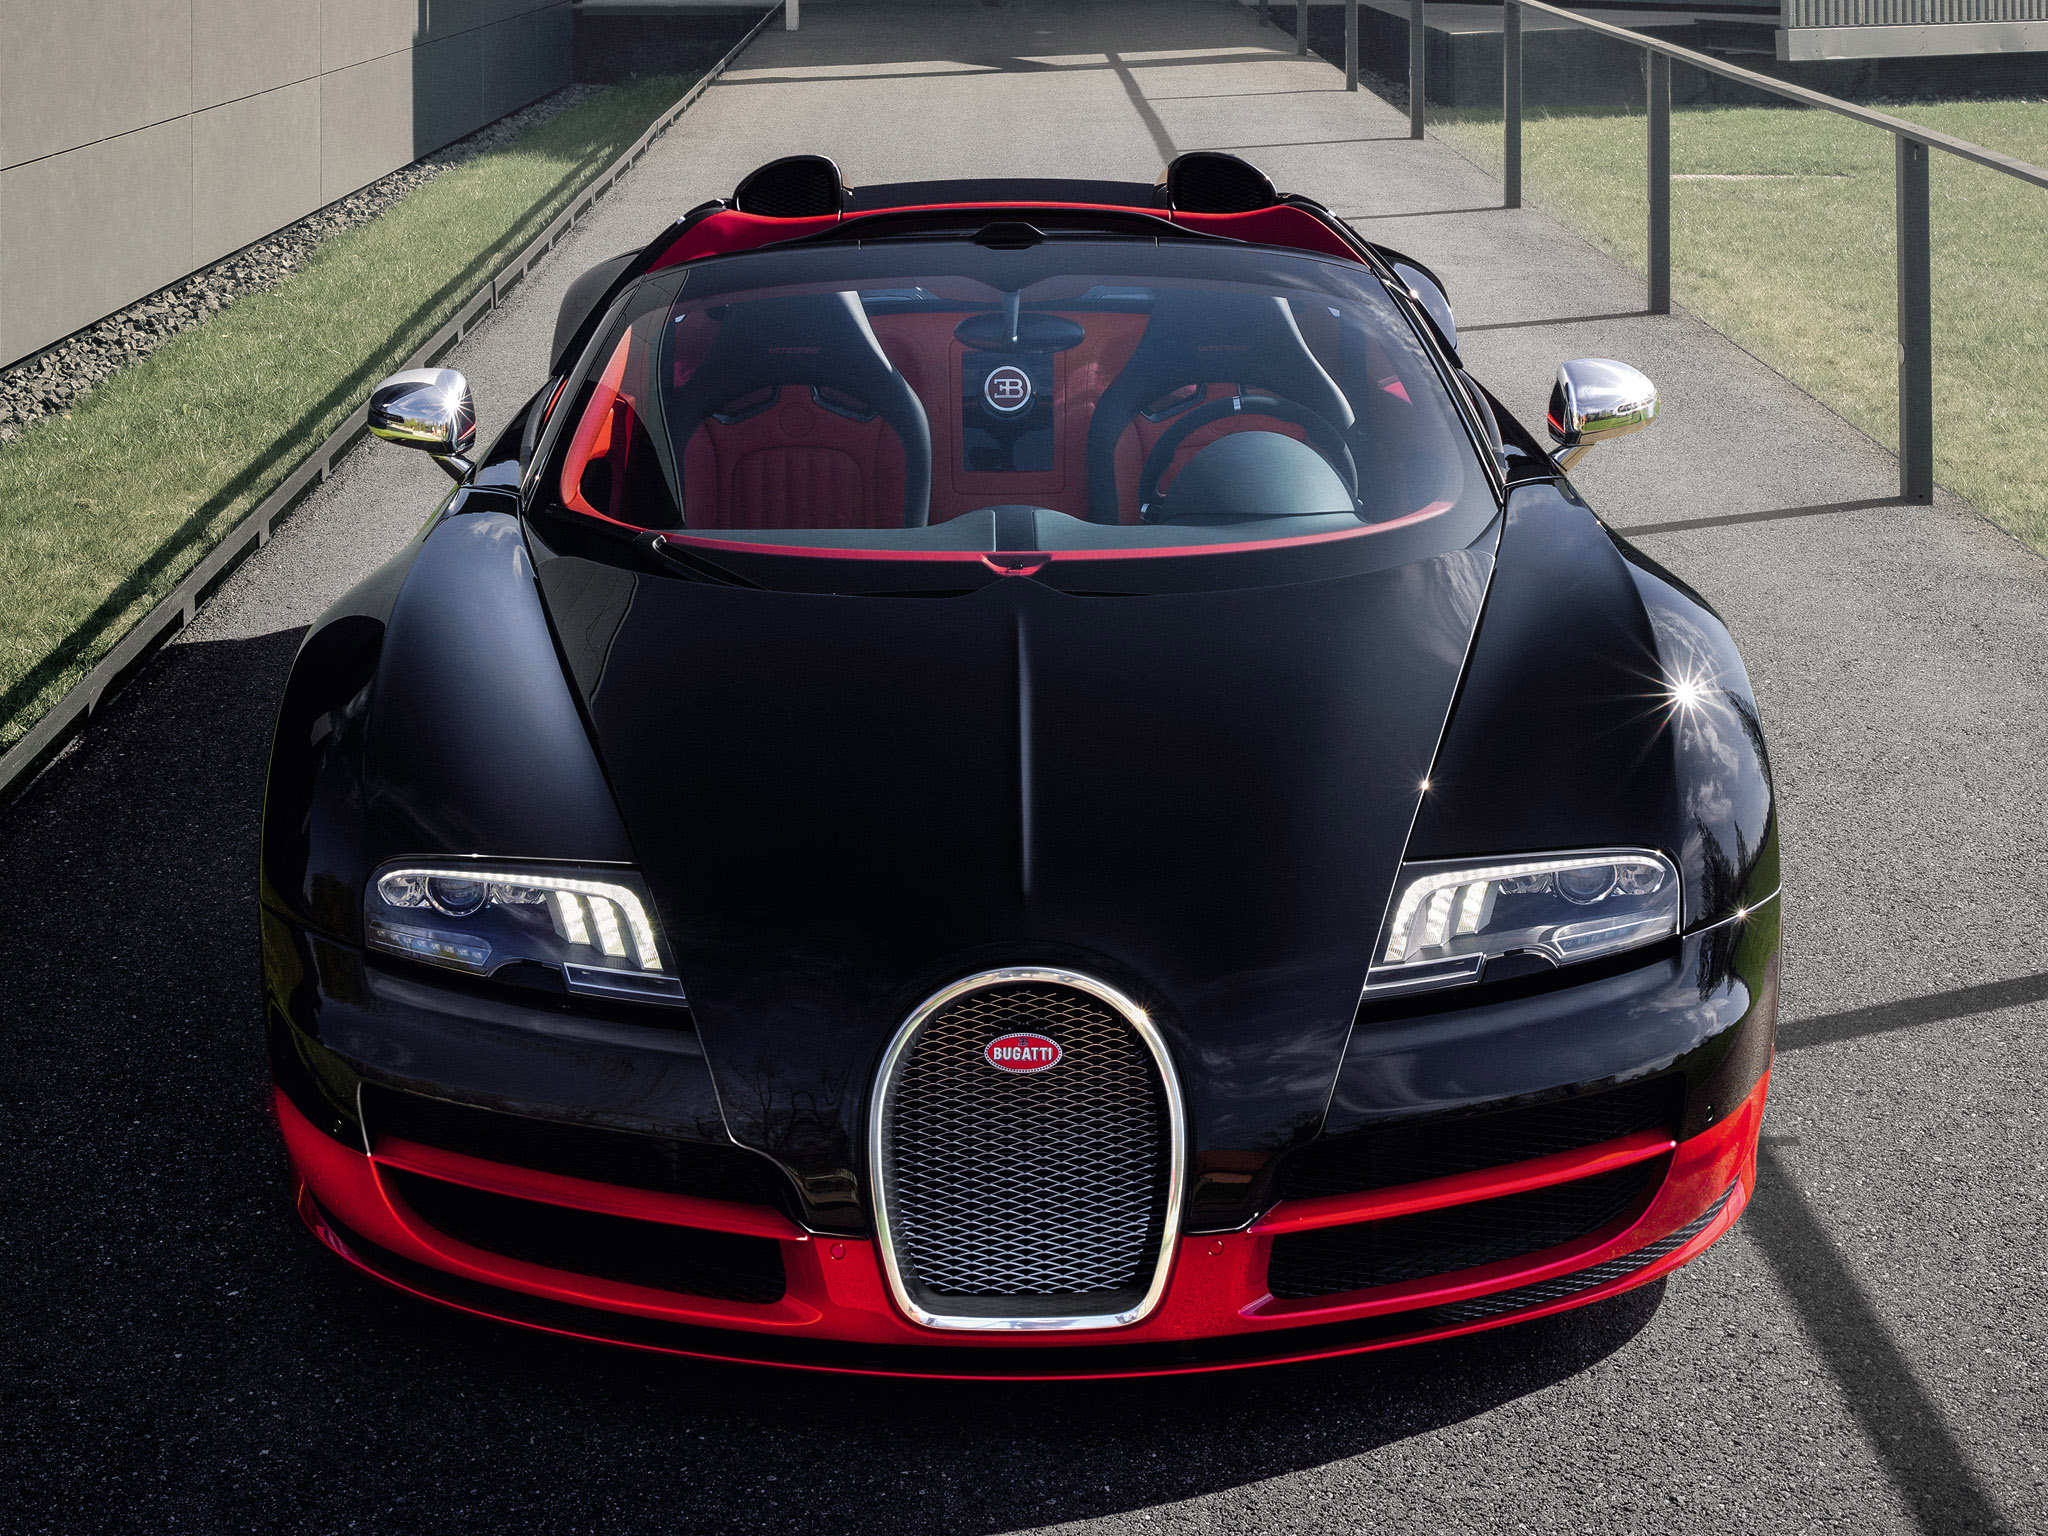 bugatti veyron grand sport roadster vitesse 2012 bugatti veyron grand sport roadster vitesse. Black Bedroom Furniture Sets. Home Design Ideas